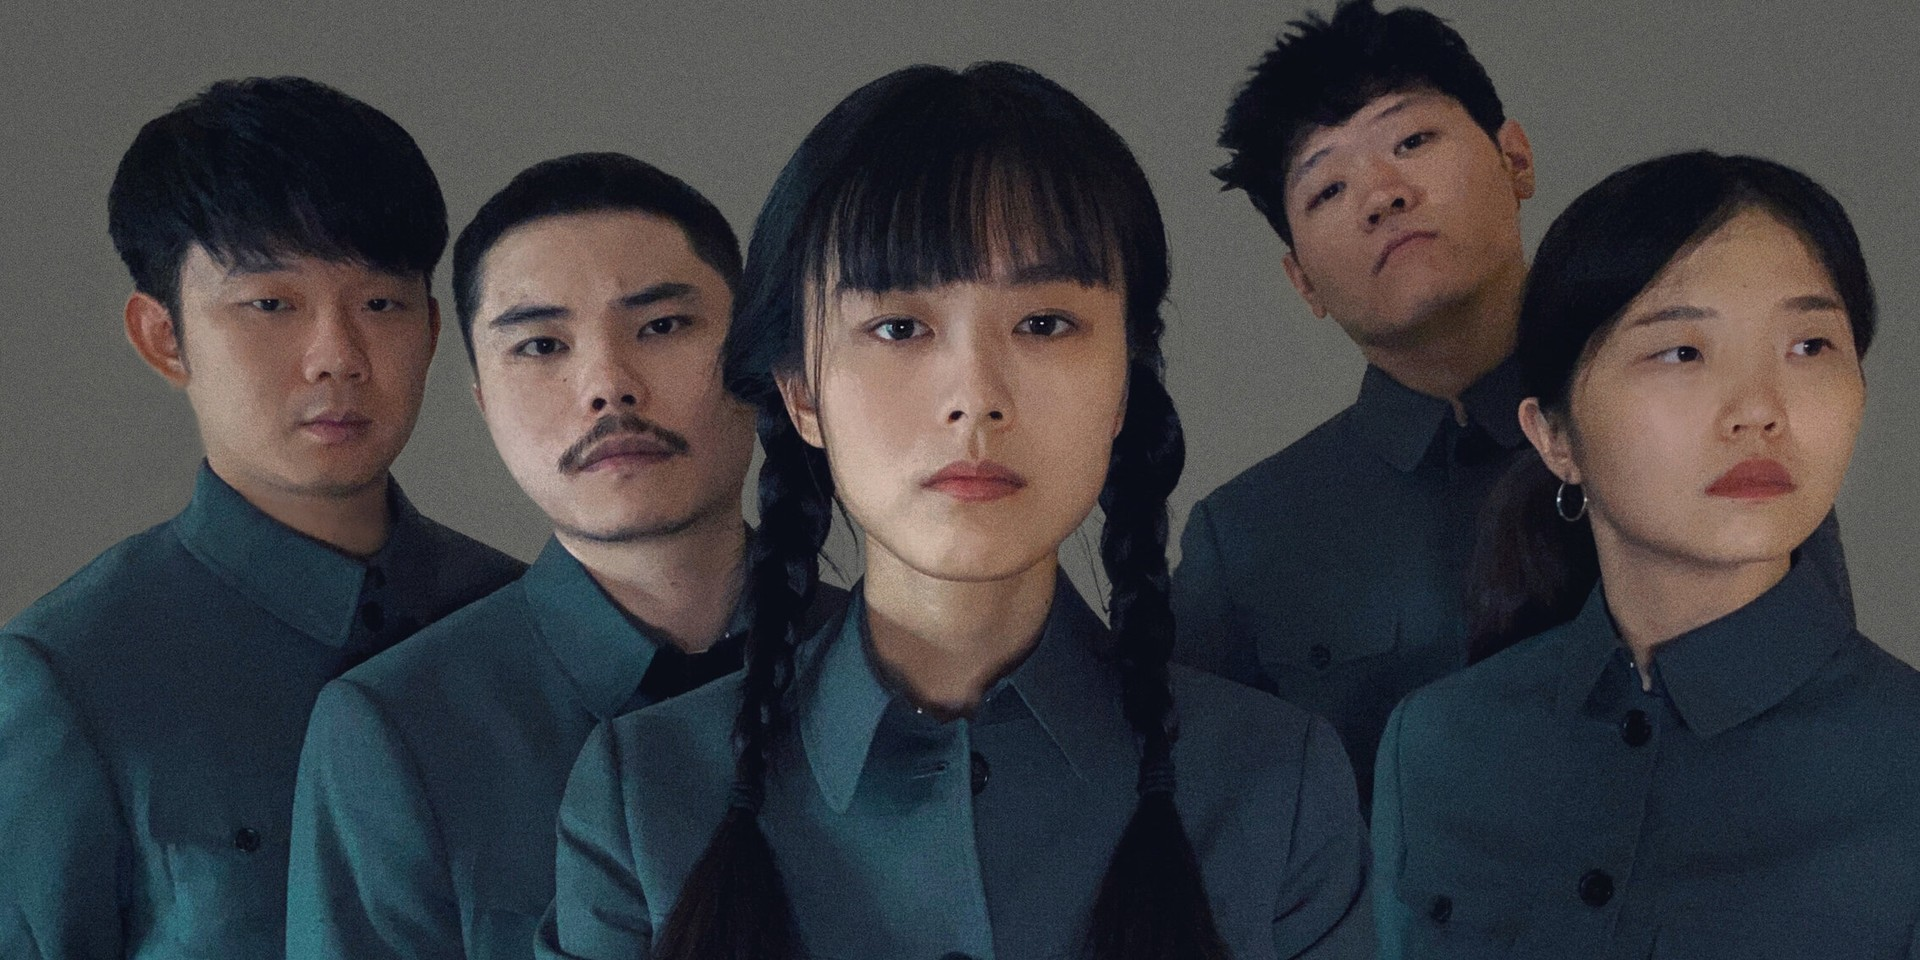 Introducing: Hiperson on making an album in lockdown and playing sold-out shows in China amidst a global pandemic